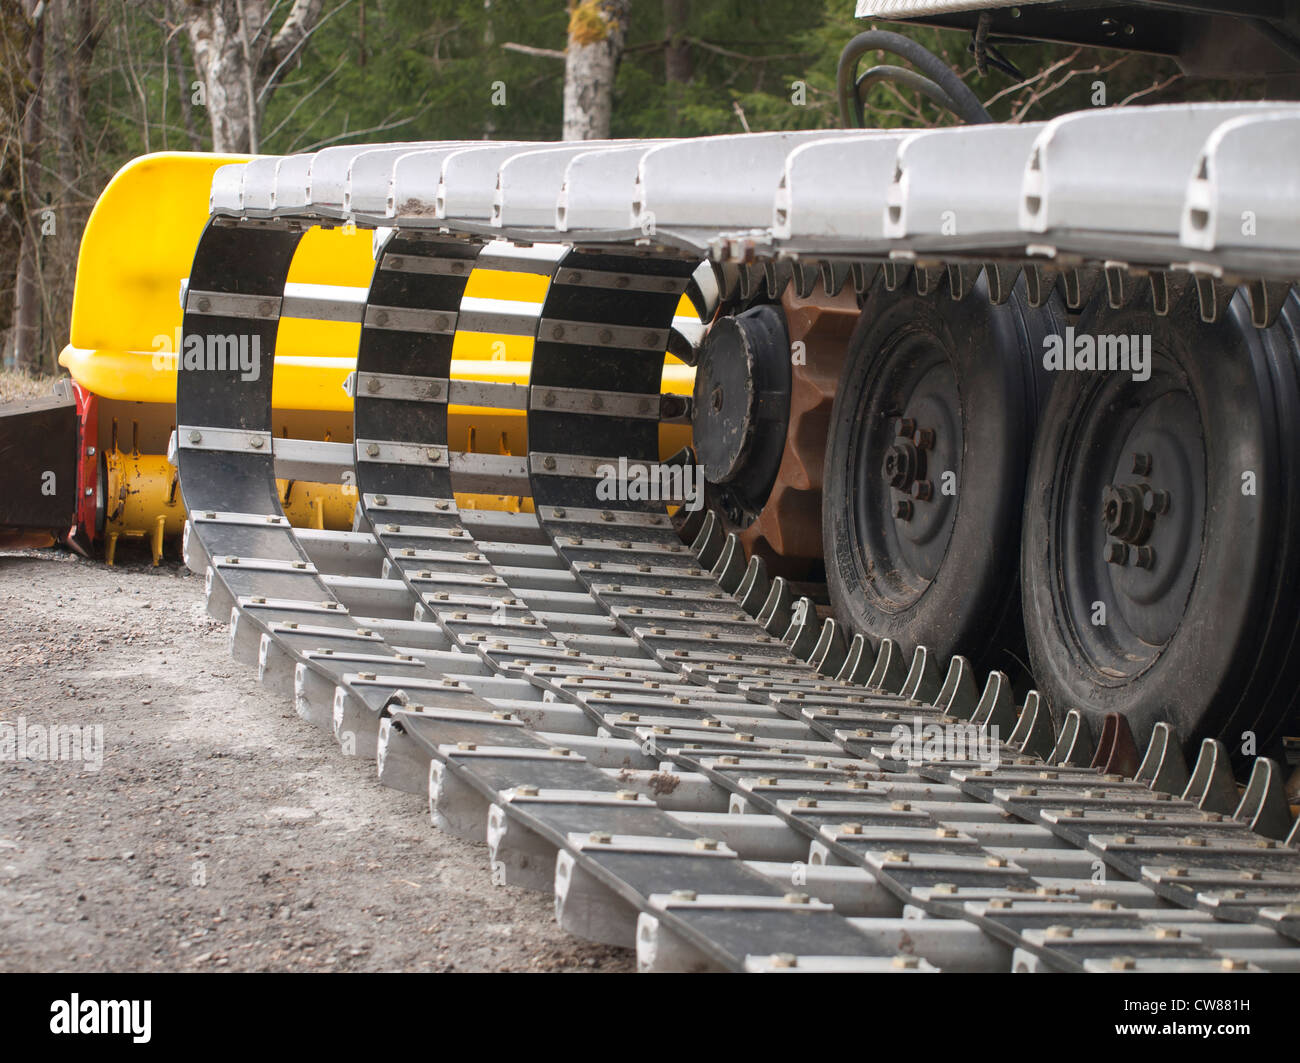 Continuous tracks or caterpillar tracks of an all terrain vehicle used for preparing ski tracks and a ski jump hill - Stock Image